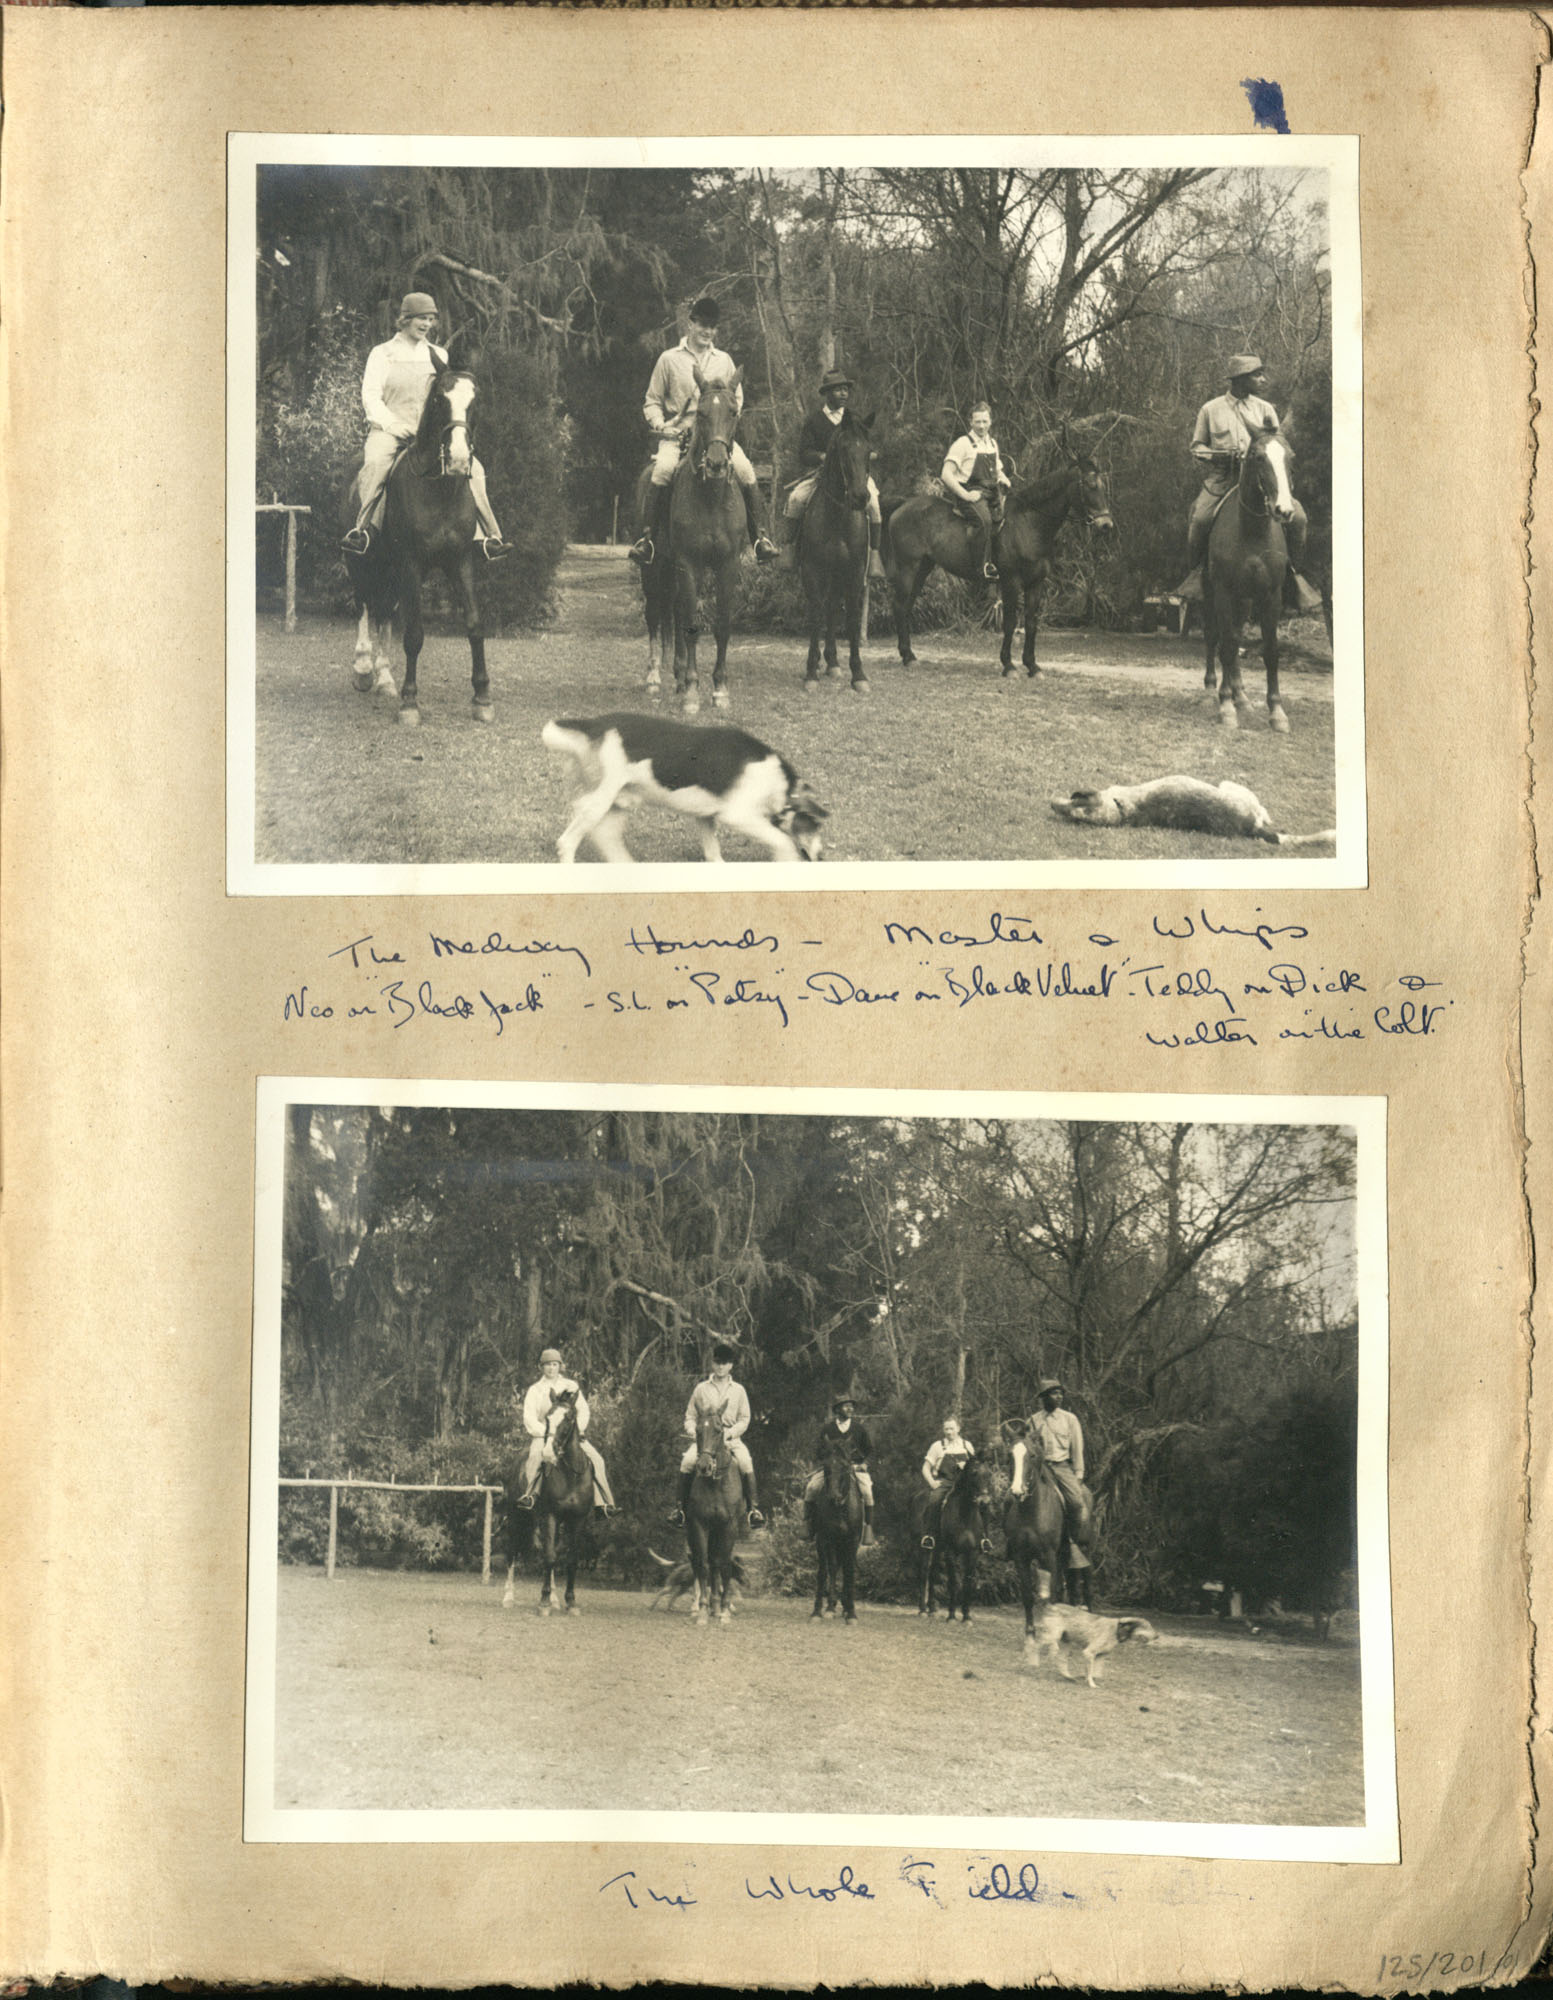 Early Medway and travels album, 1929-1937, page 125